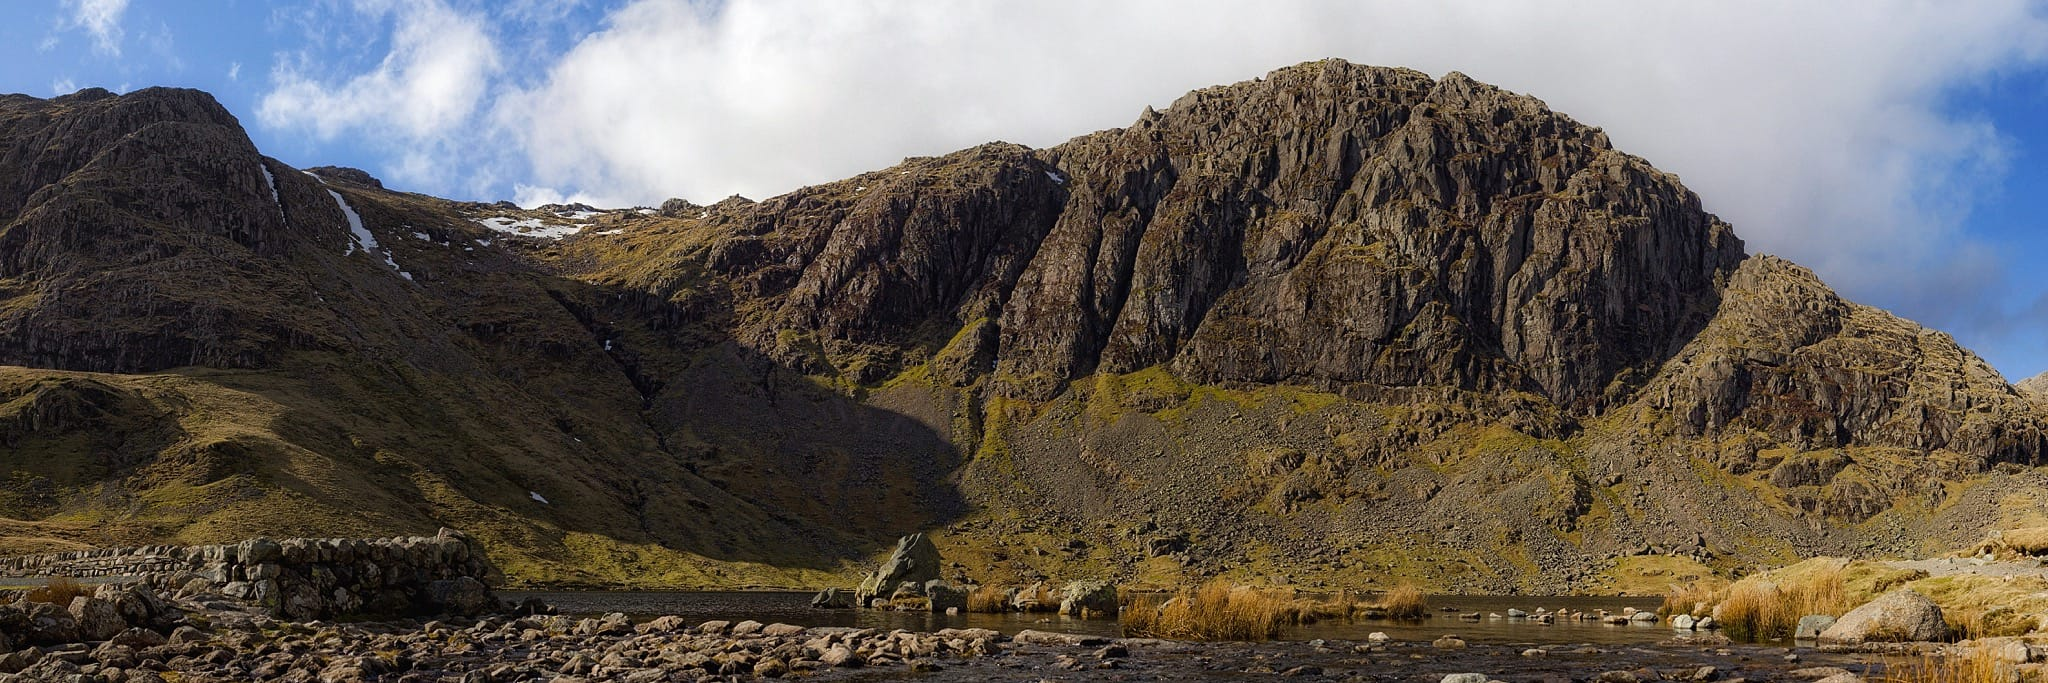 A view of the cliffs of Pavey Ark and Harrison Stickle from the shore of Stickle Tarn. Photo by nagualdesign (CC BY-SA 4.0)